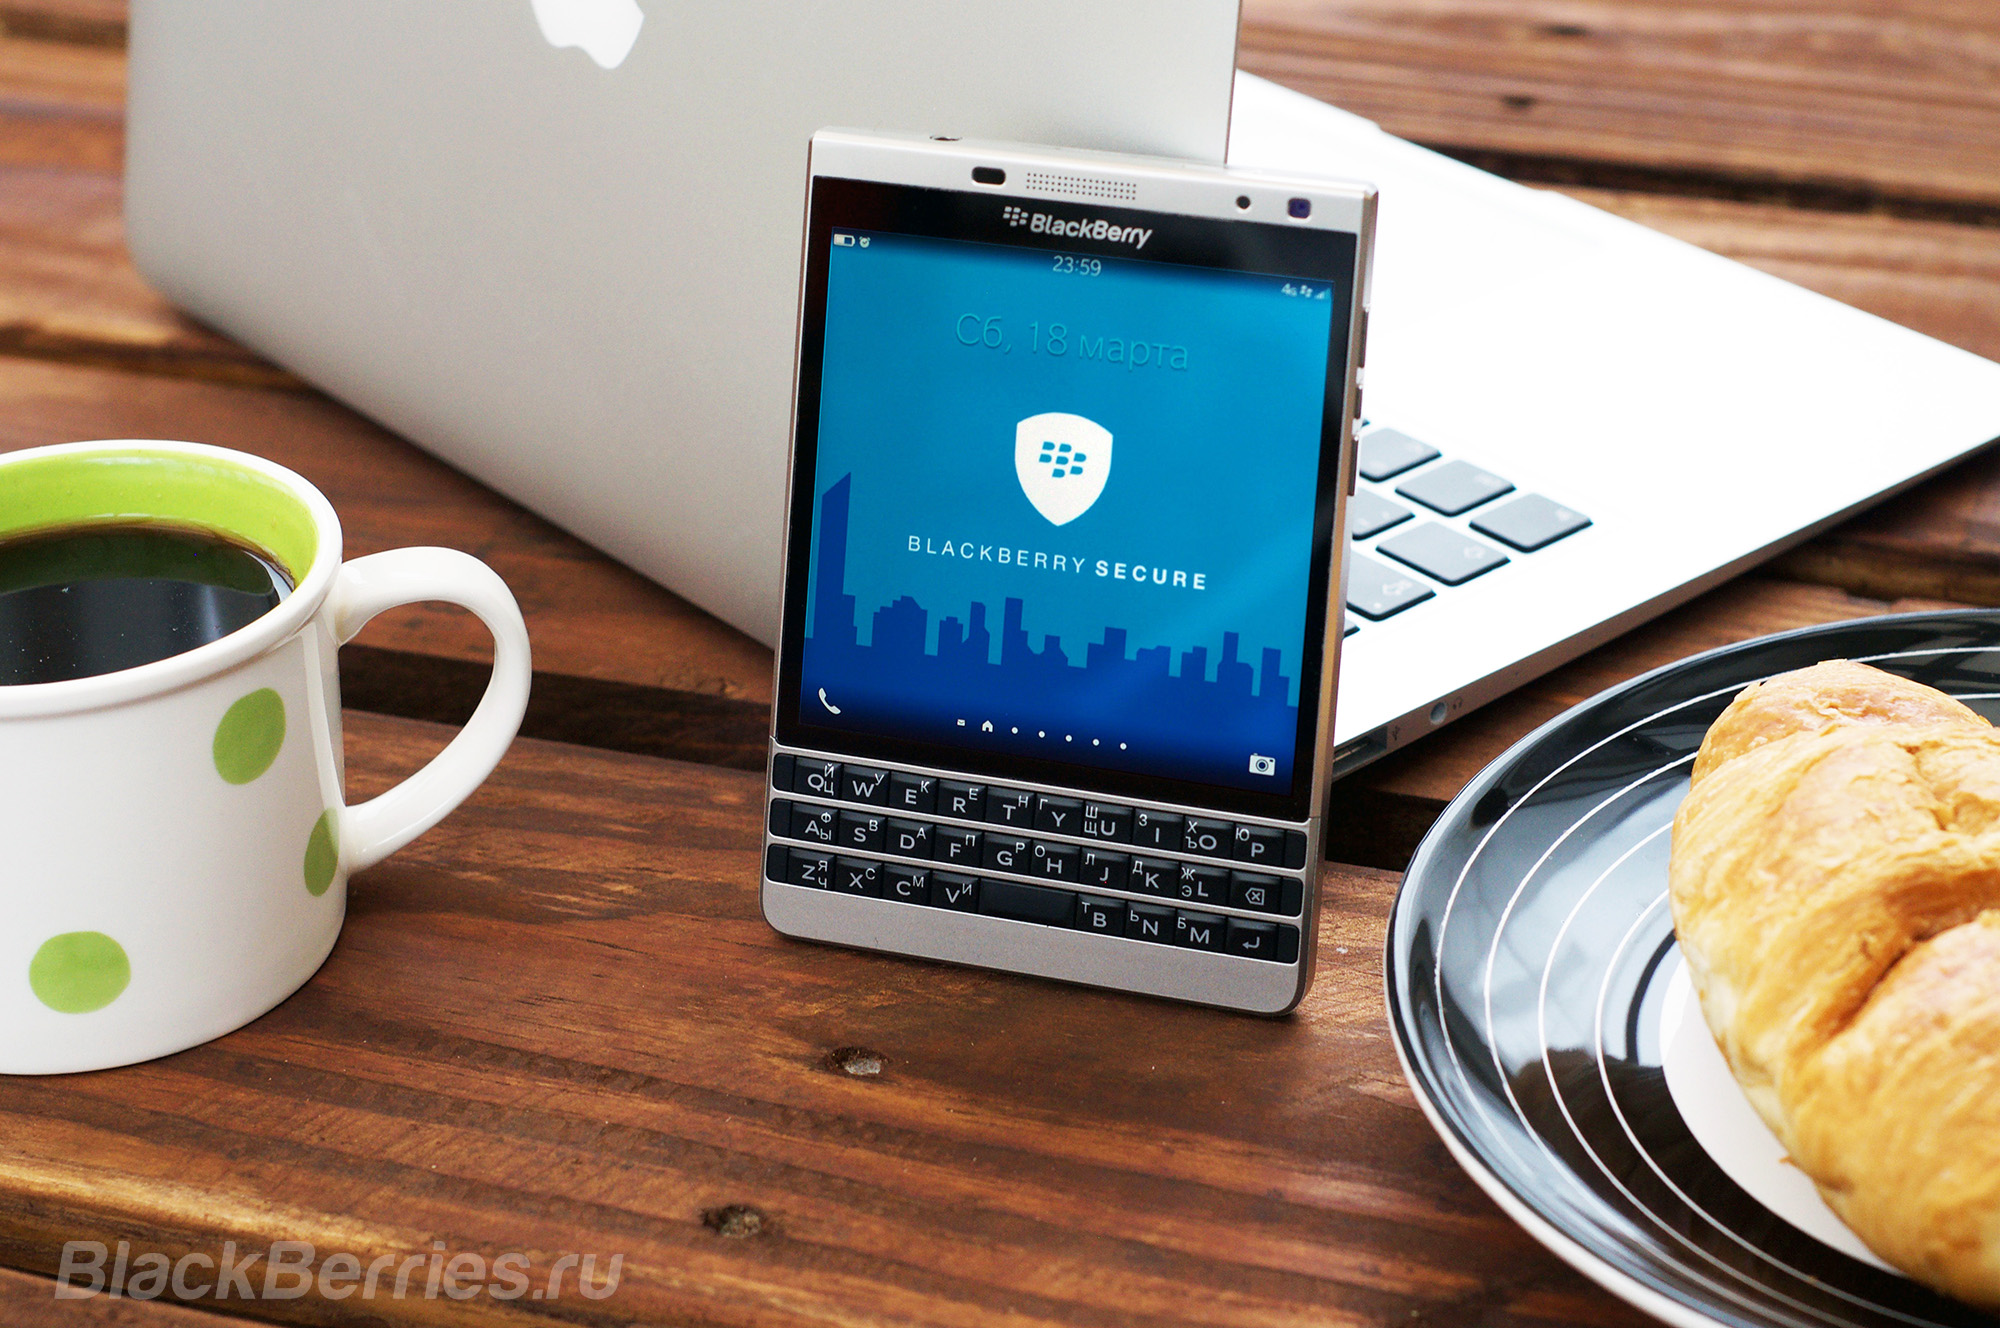 BlackBerry-Wallpaper-02